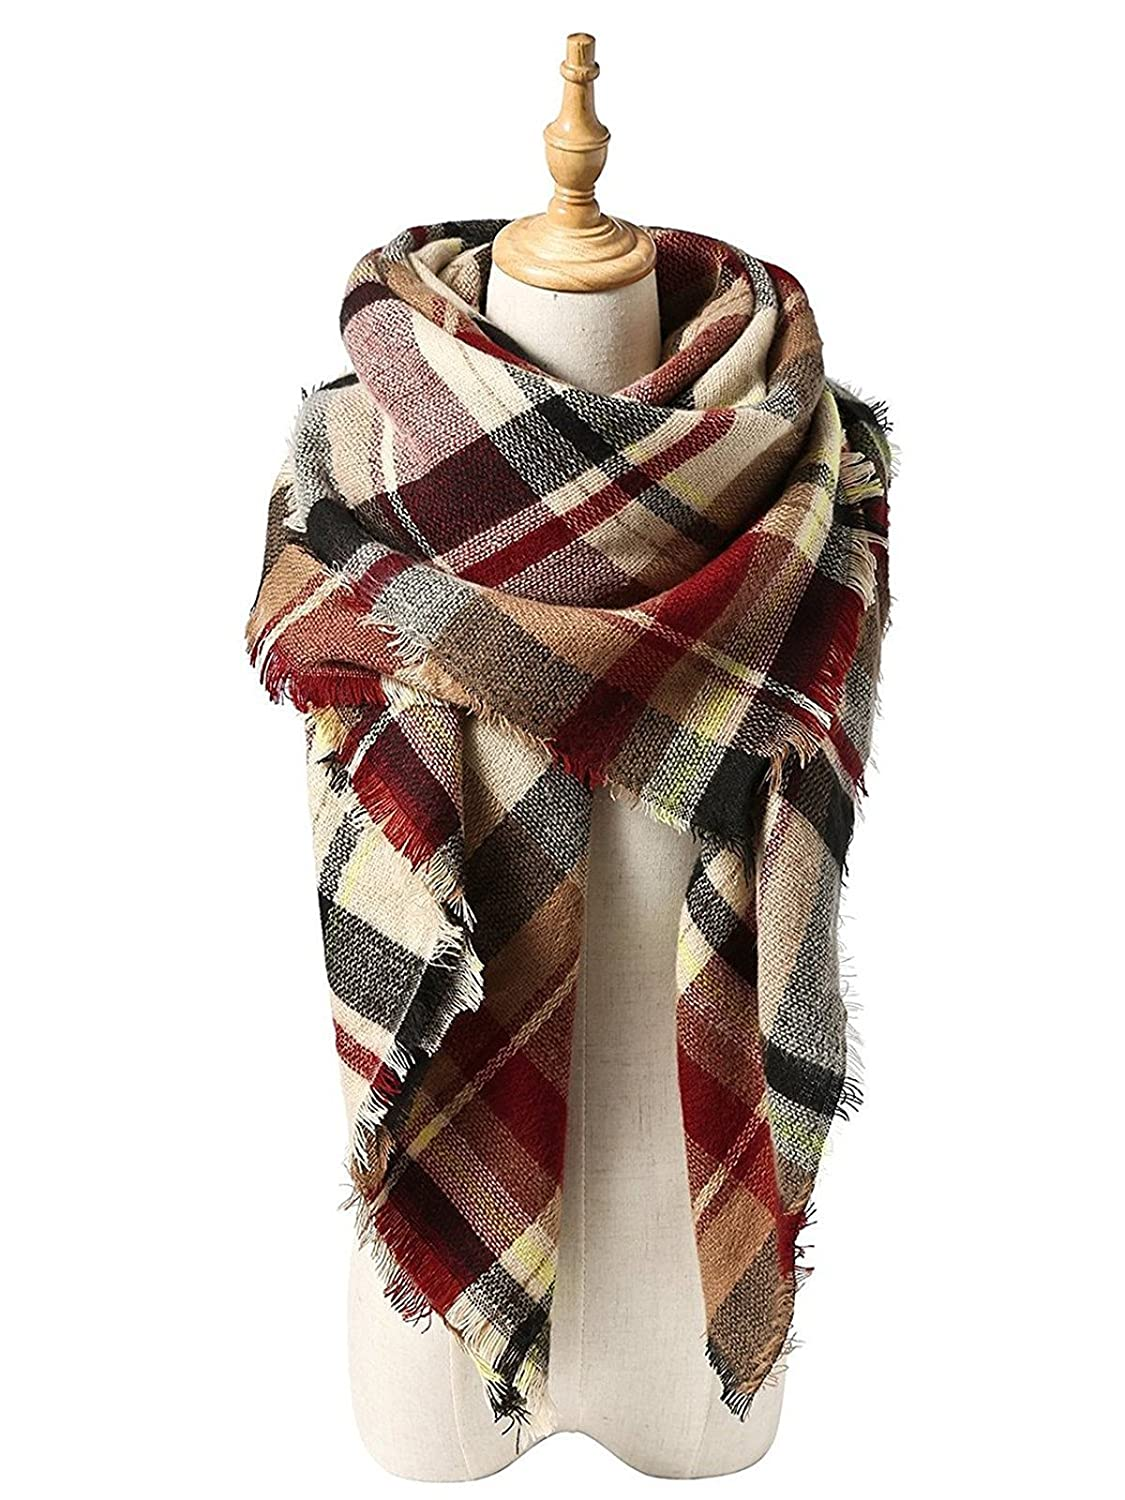 Women's Plaid Blanket Winter Scarf Warm Cozy Tartan Wrap Oversized Shawl Cape For Women MNUSCUVBH0A6965